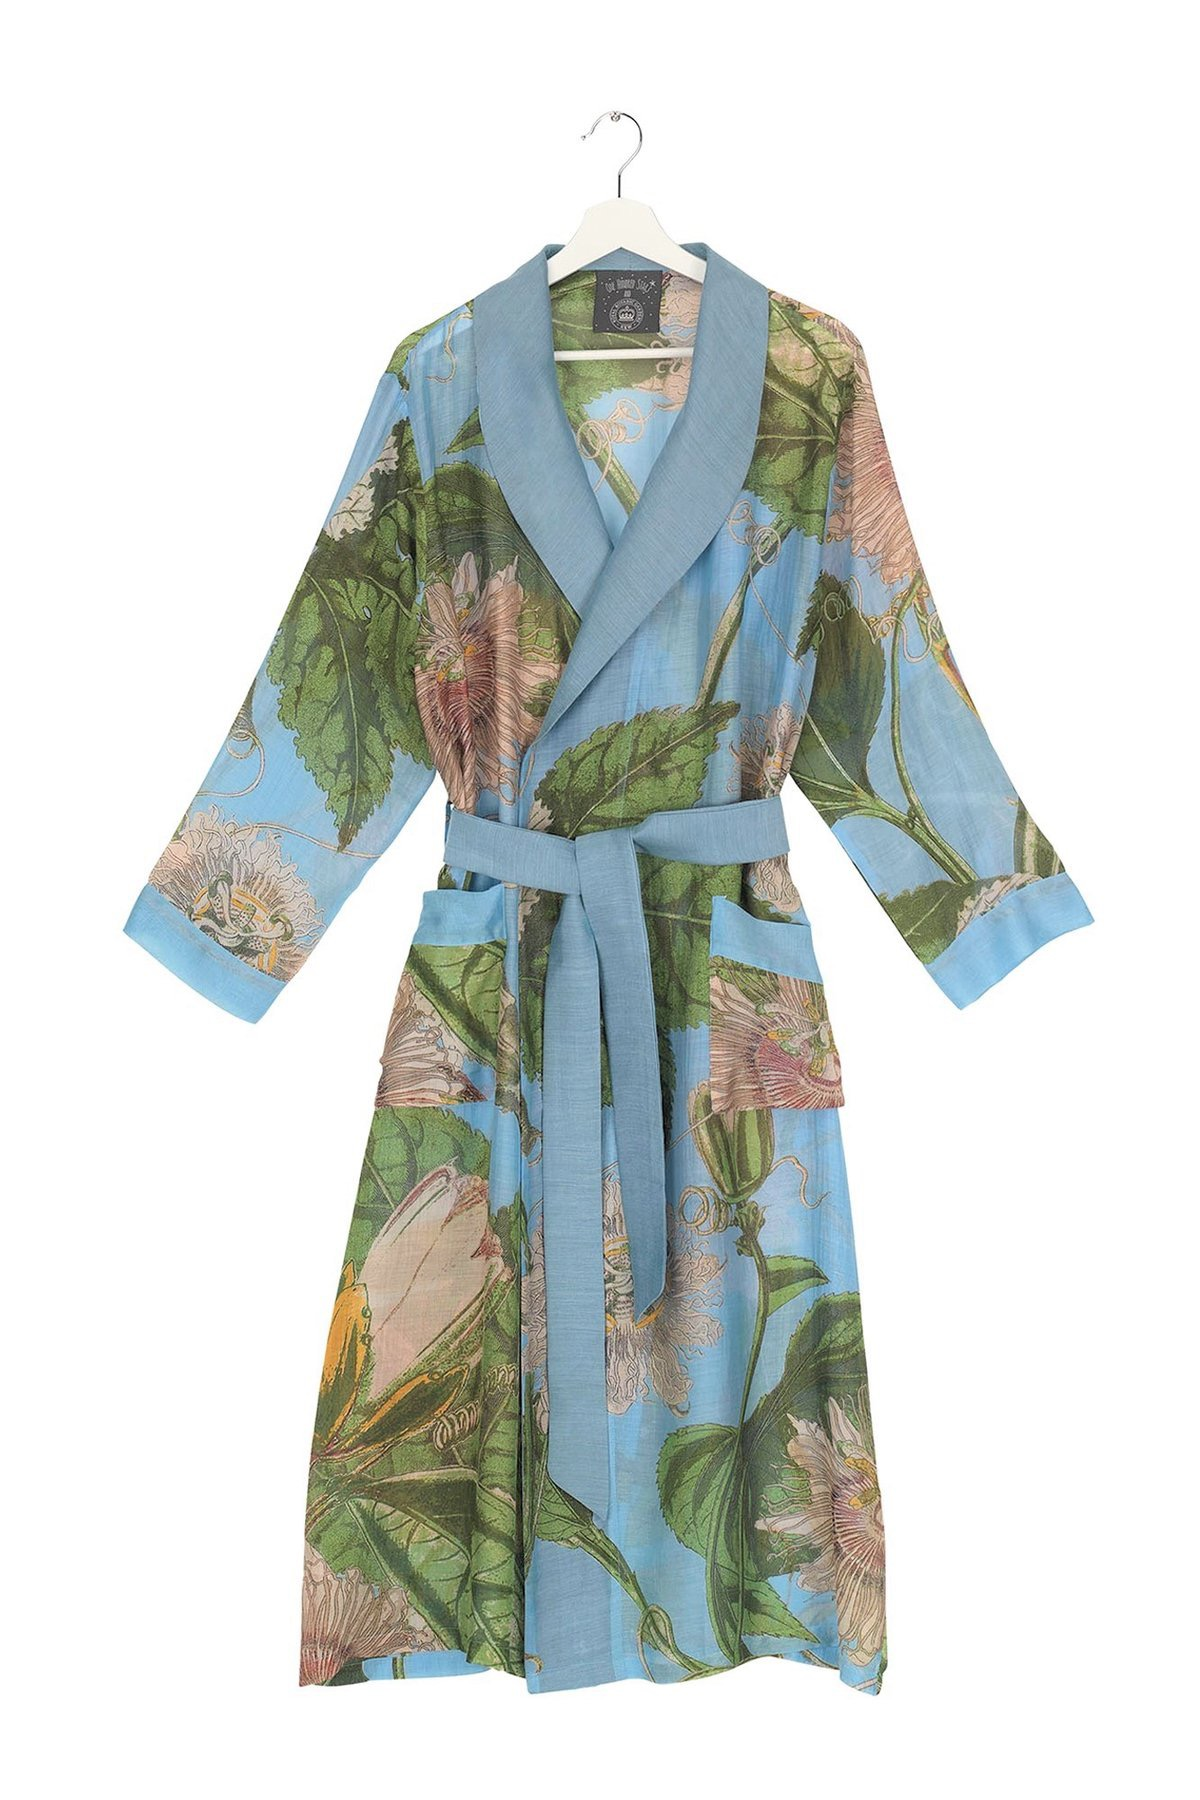 One Hundred Stars KEW Passion Flower Sky Gown